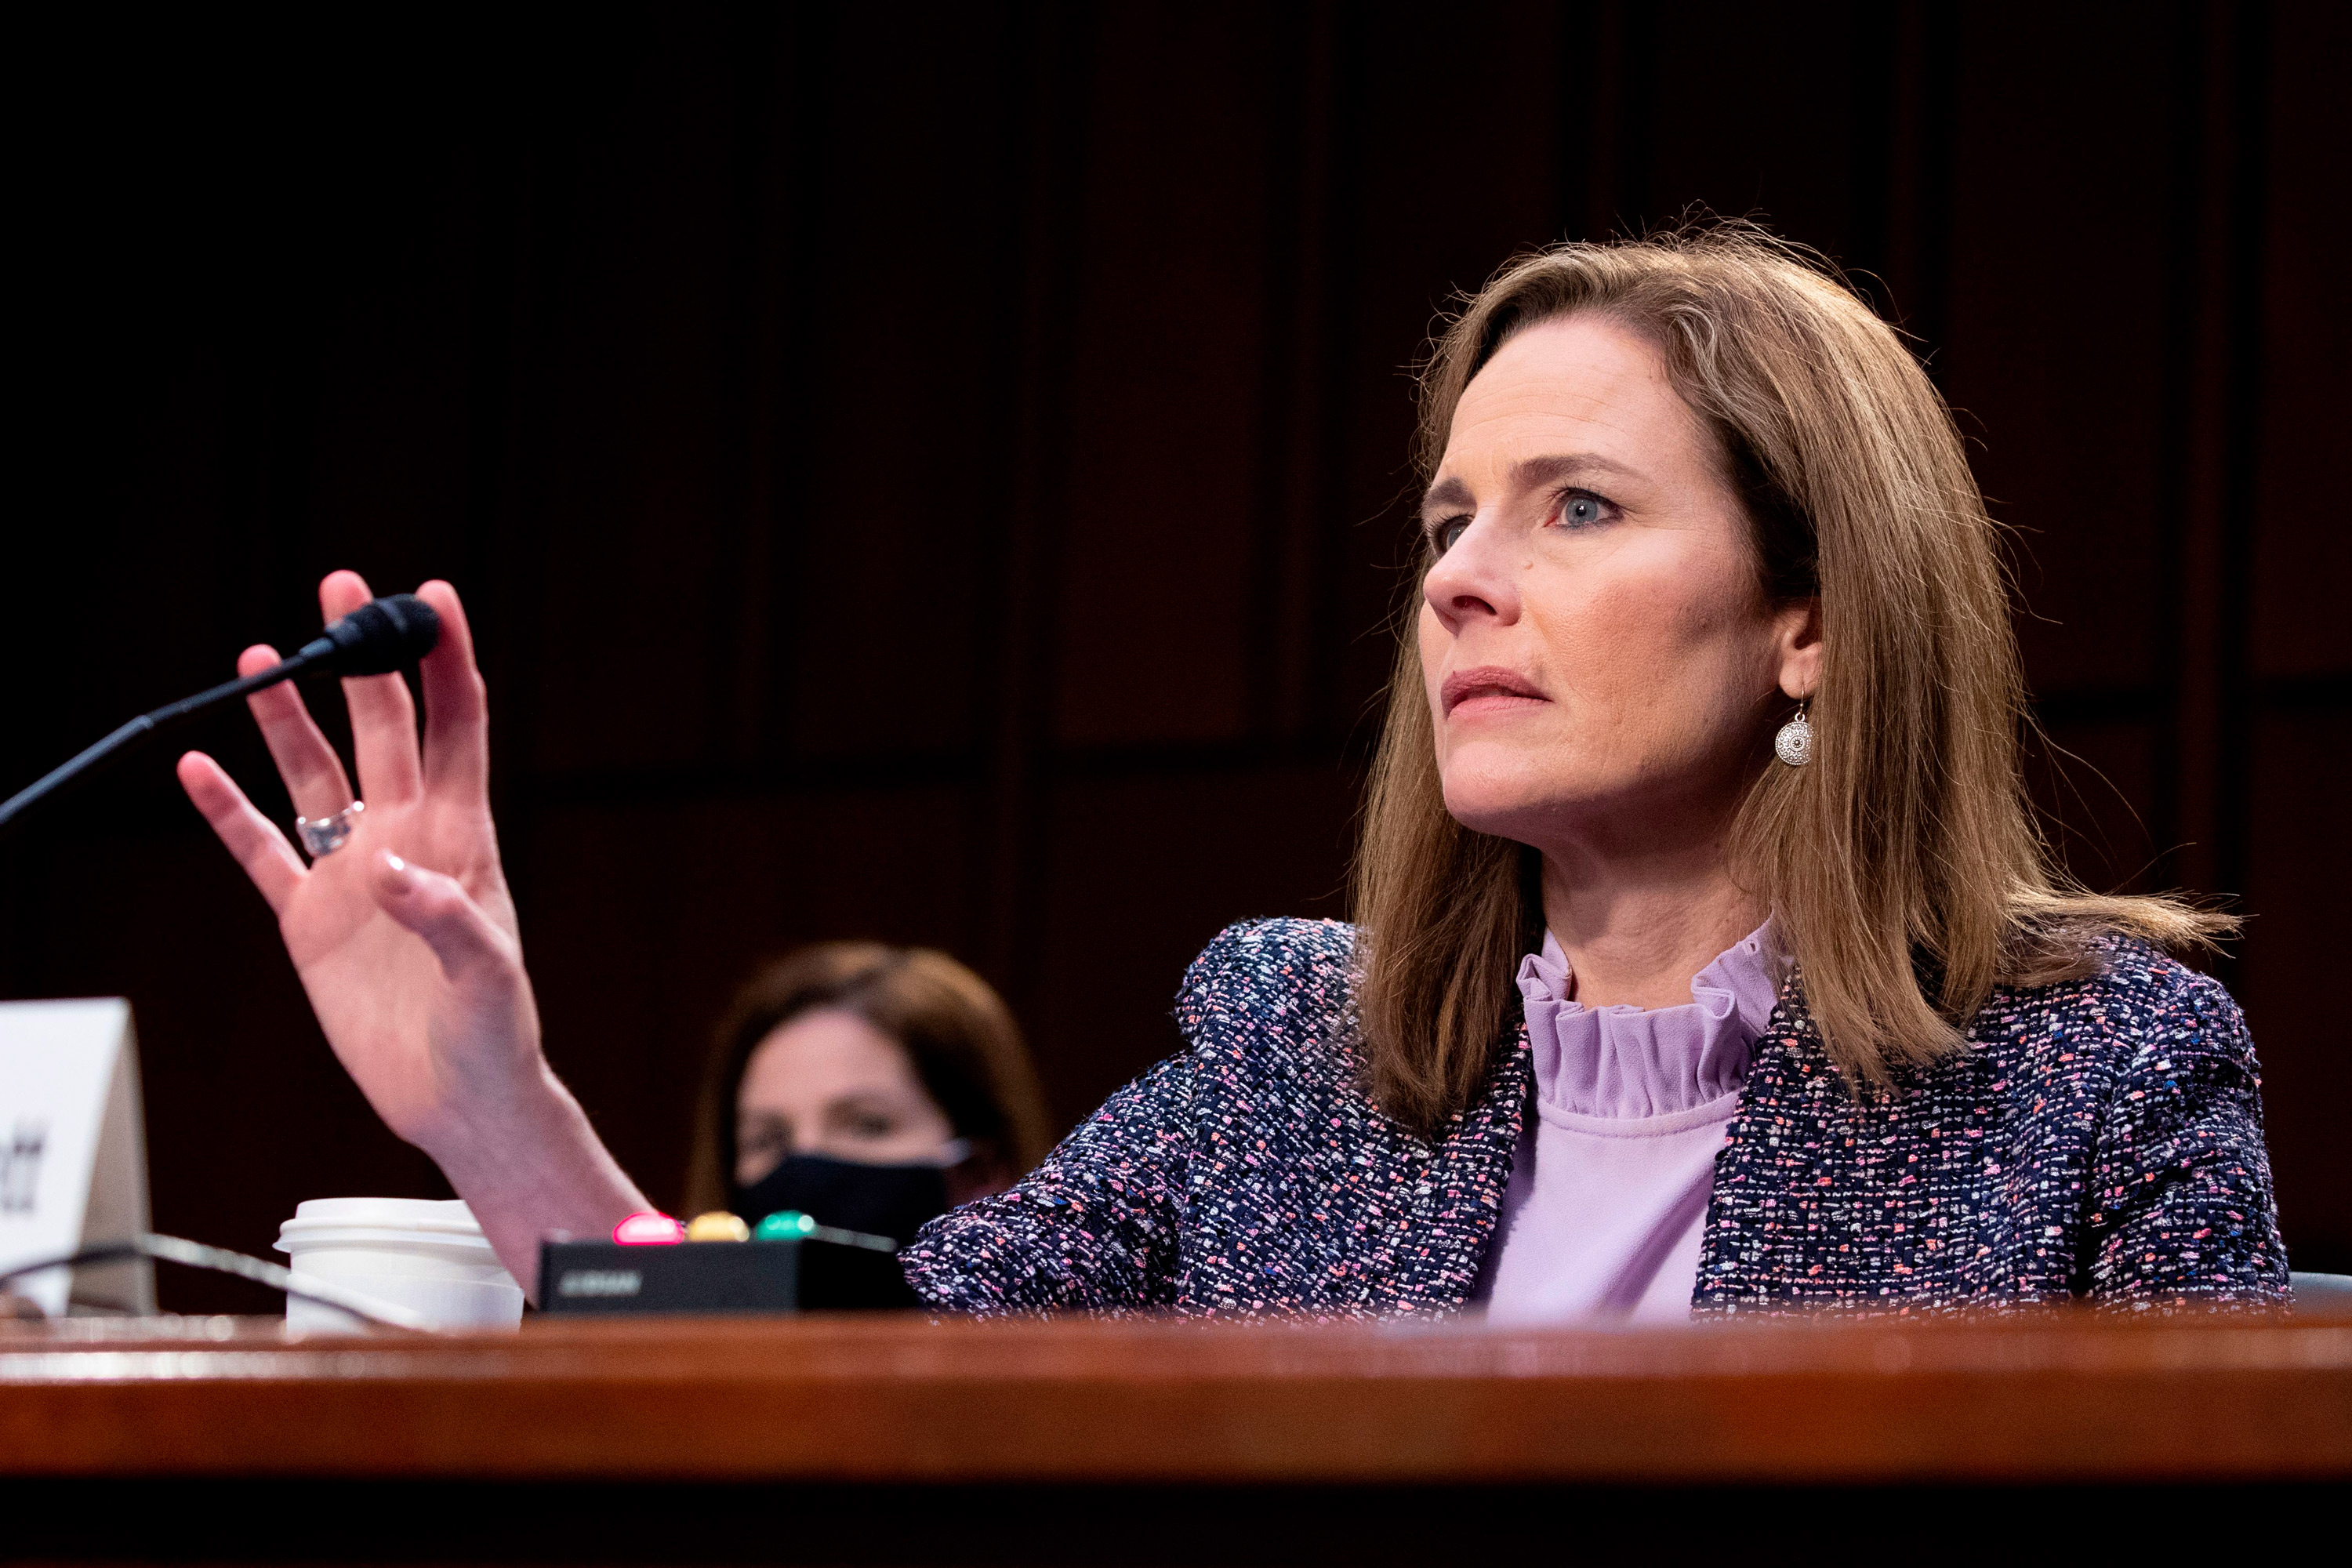 Judge Amy Coney Barrett again updates her Senate paperwork after CNN's KFile found omissions